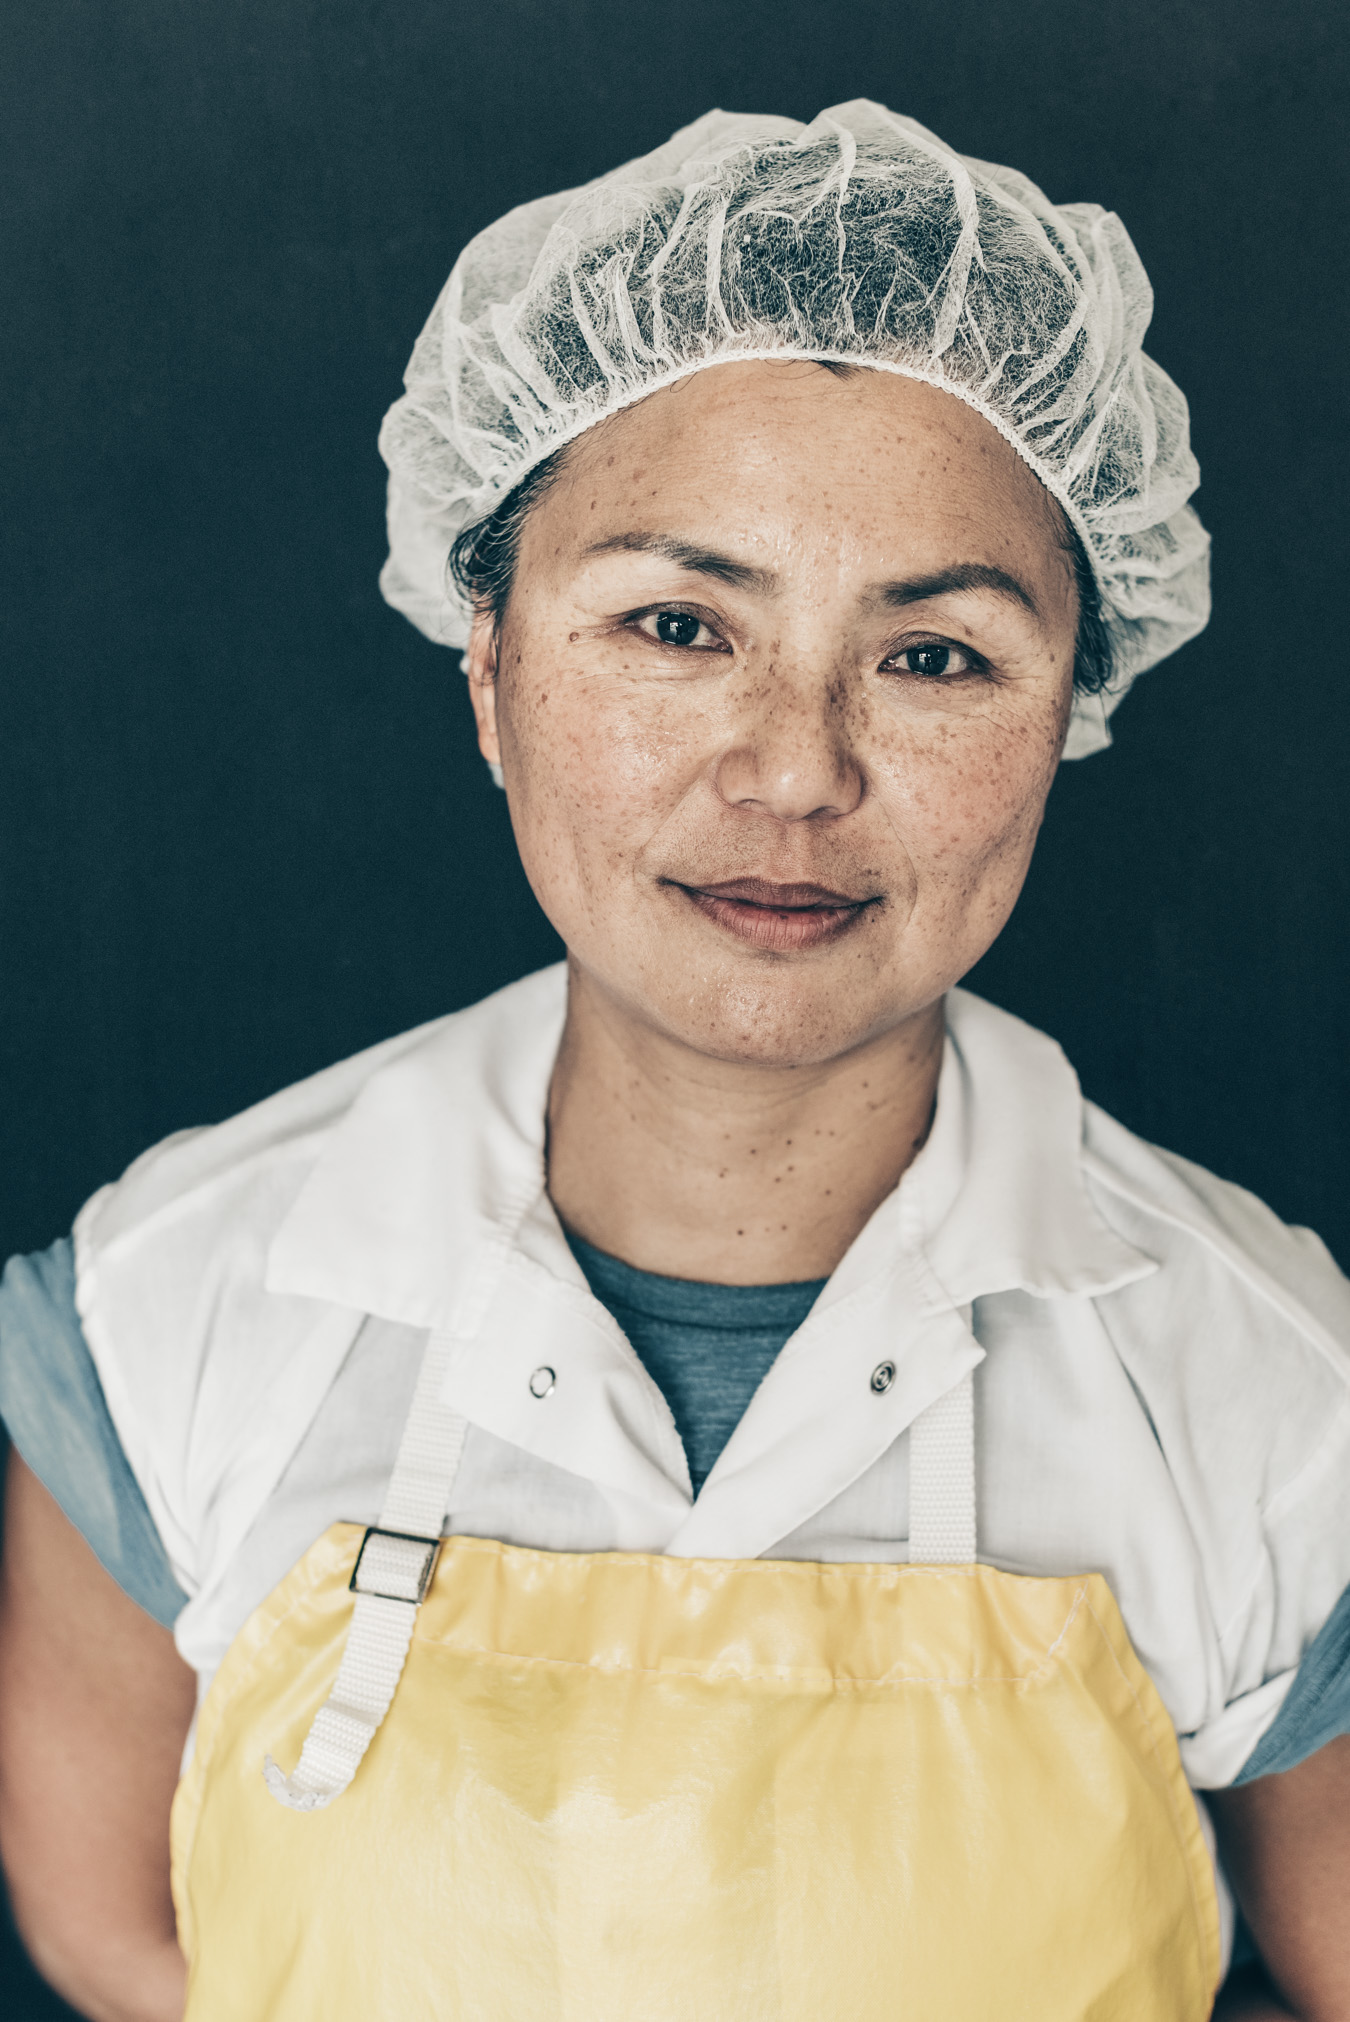 Haystack dairy goat cheese maker woman portrait